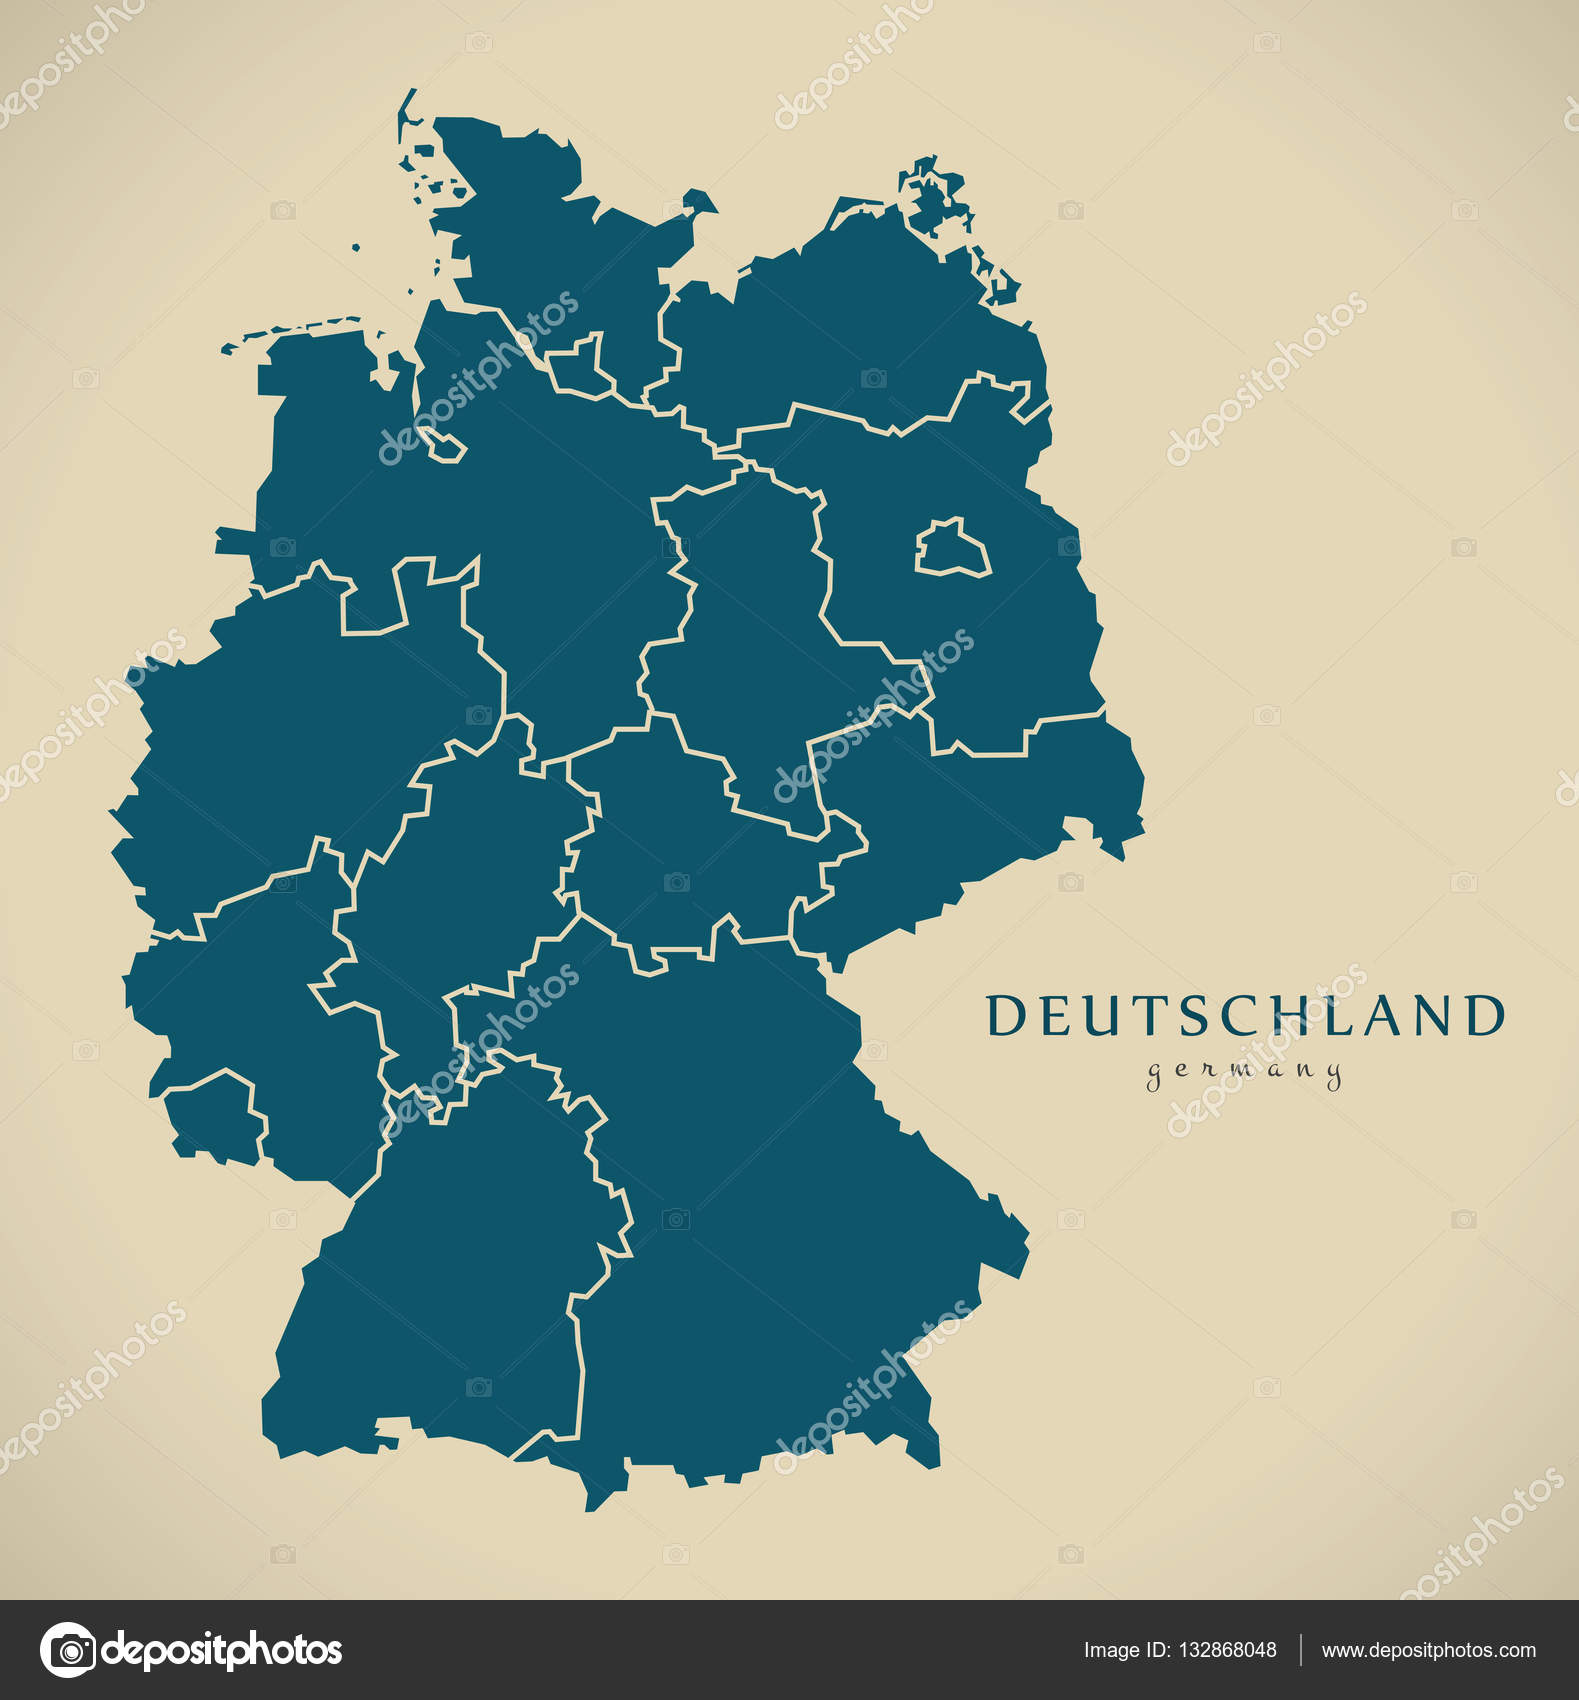 Map Of Germany With States.Modern Map Germany With Federal States De Stock Photo